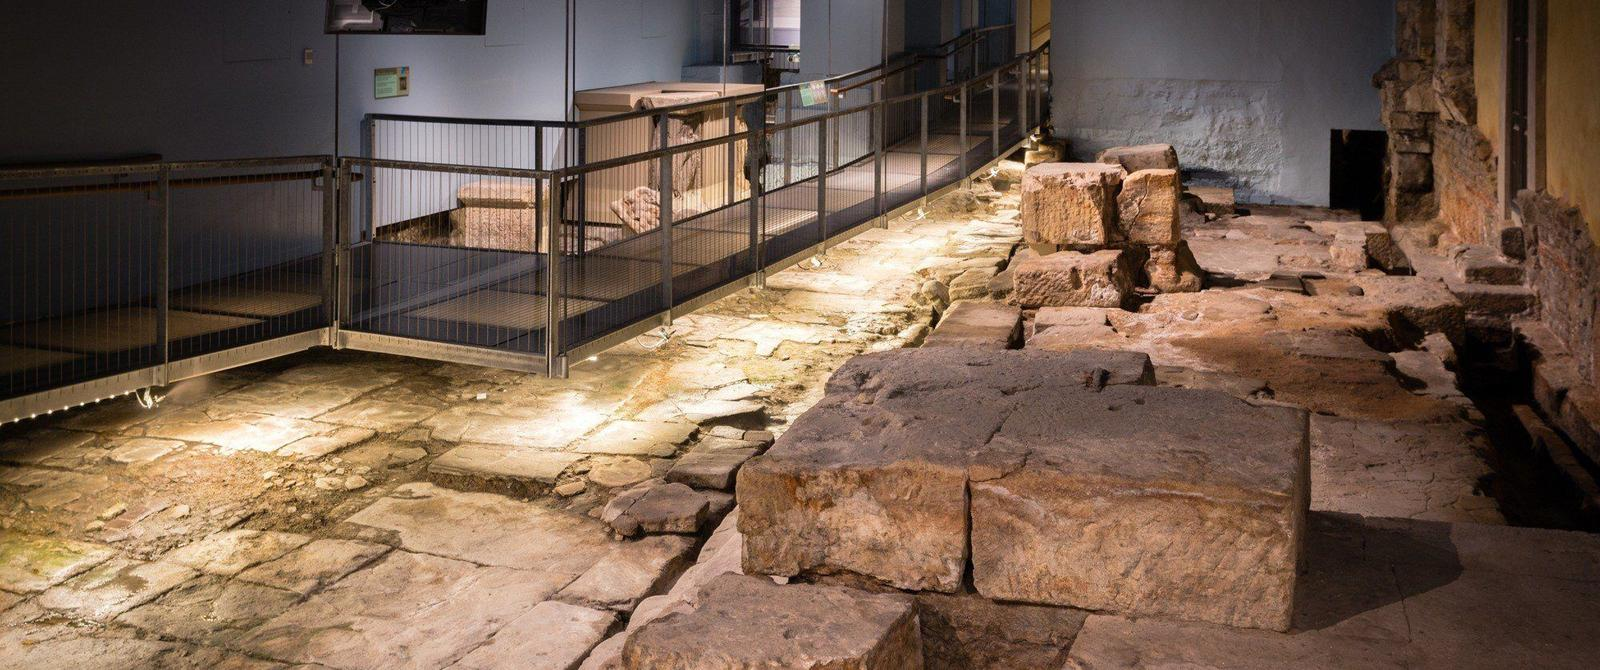 Temple Precinct at the Roman Baths